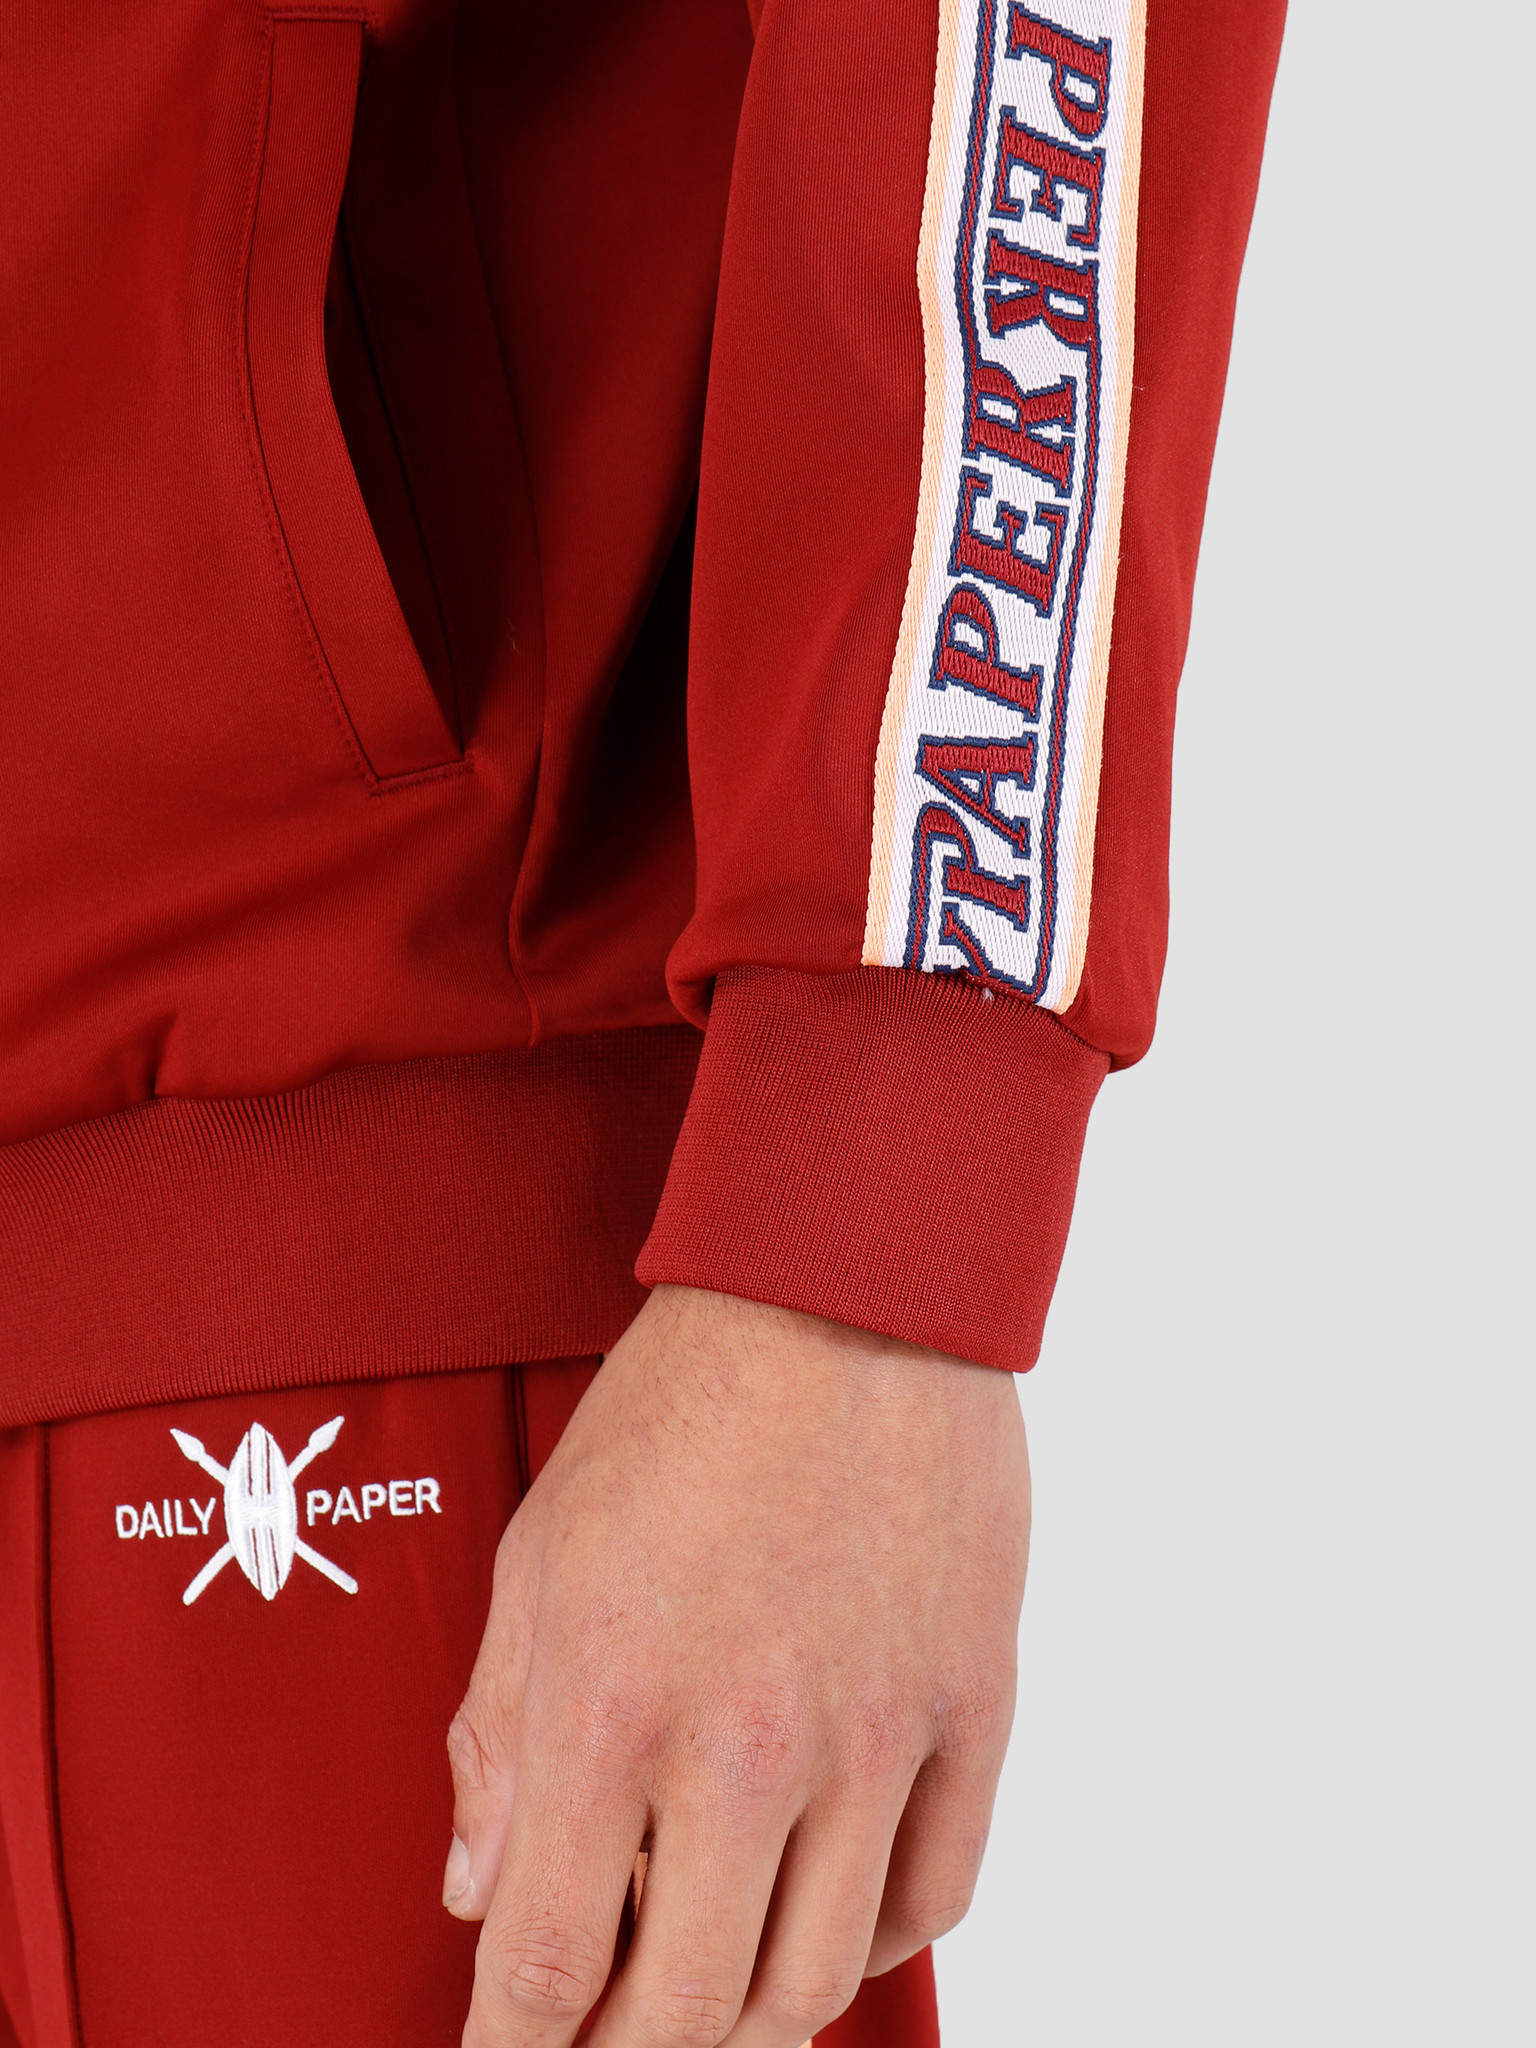 Daily Paper Daily Paper Tapevest Outerwear Syrah Red 20S1OU04-01